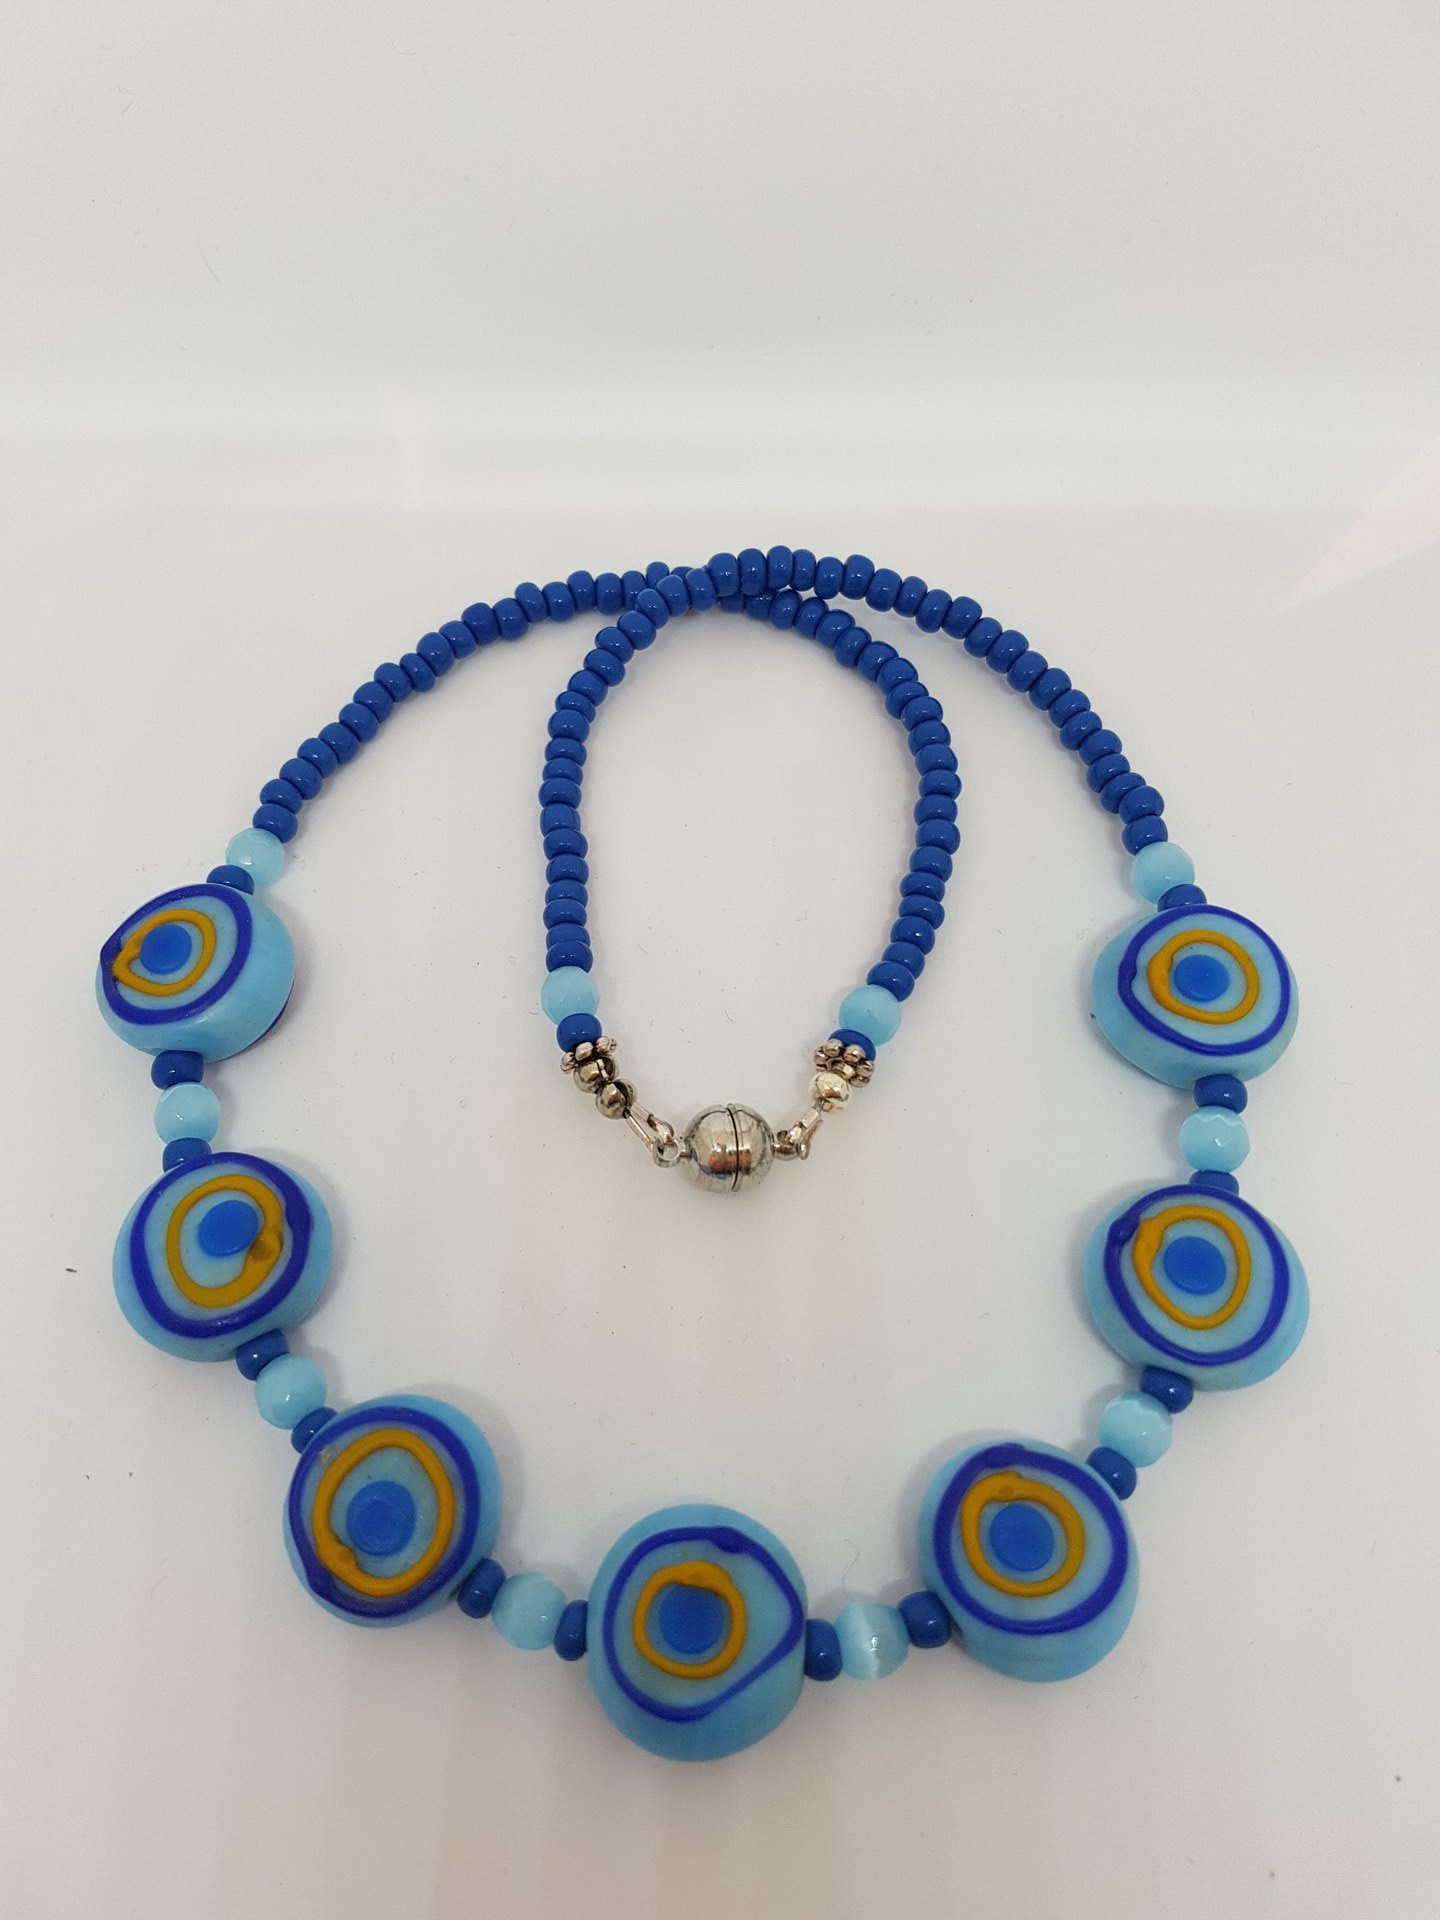 Blue beaded necklace with 7 focal beads